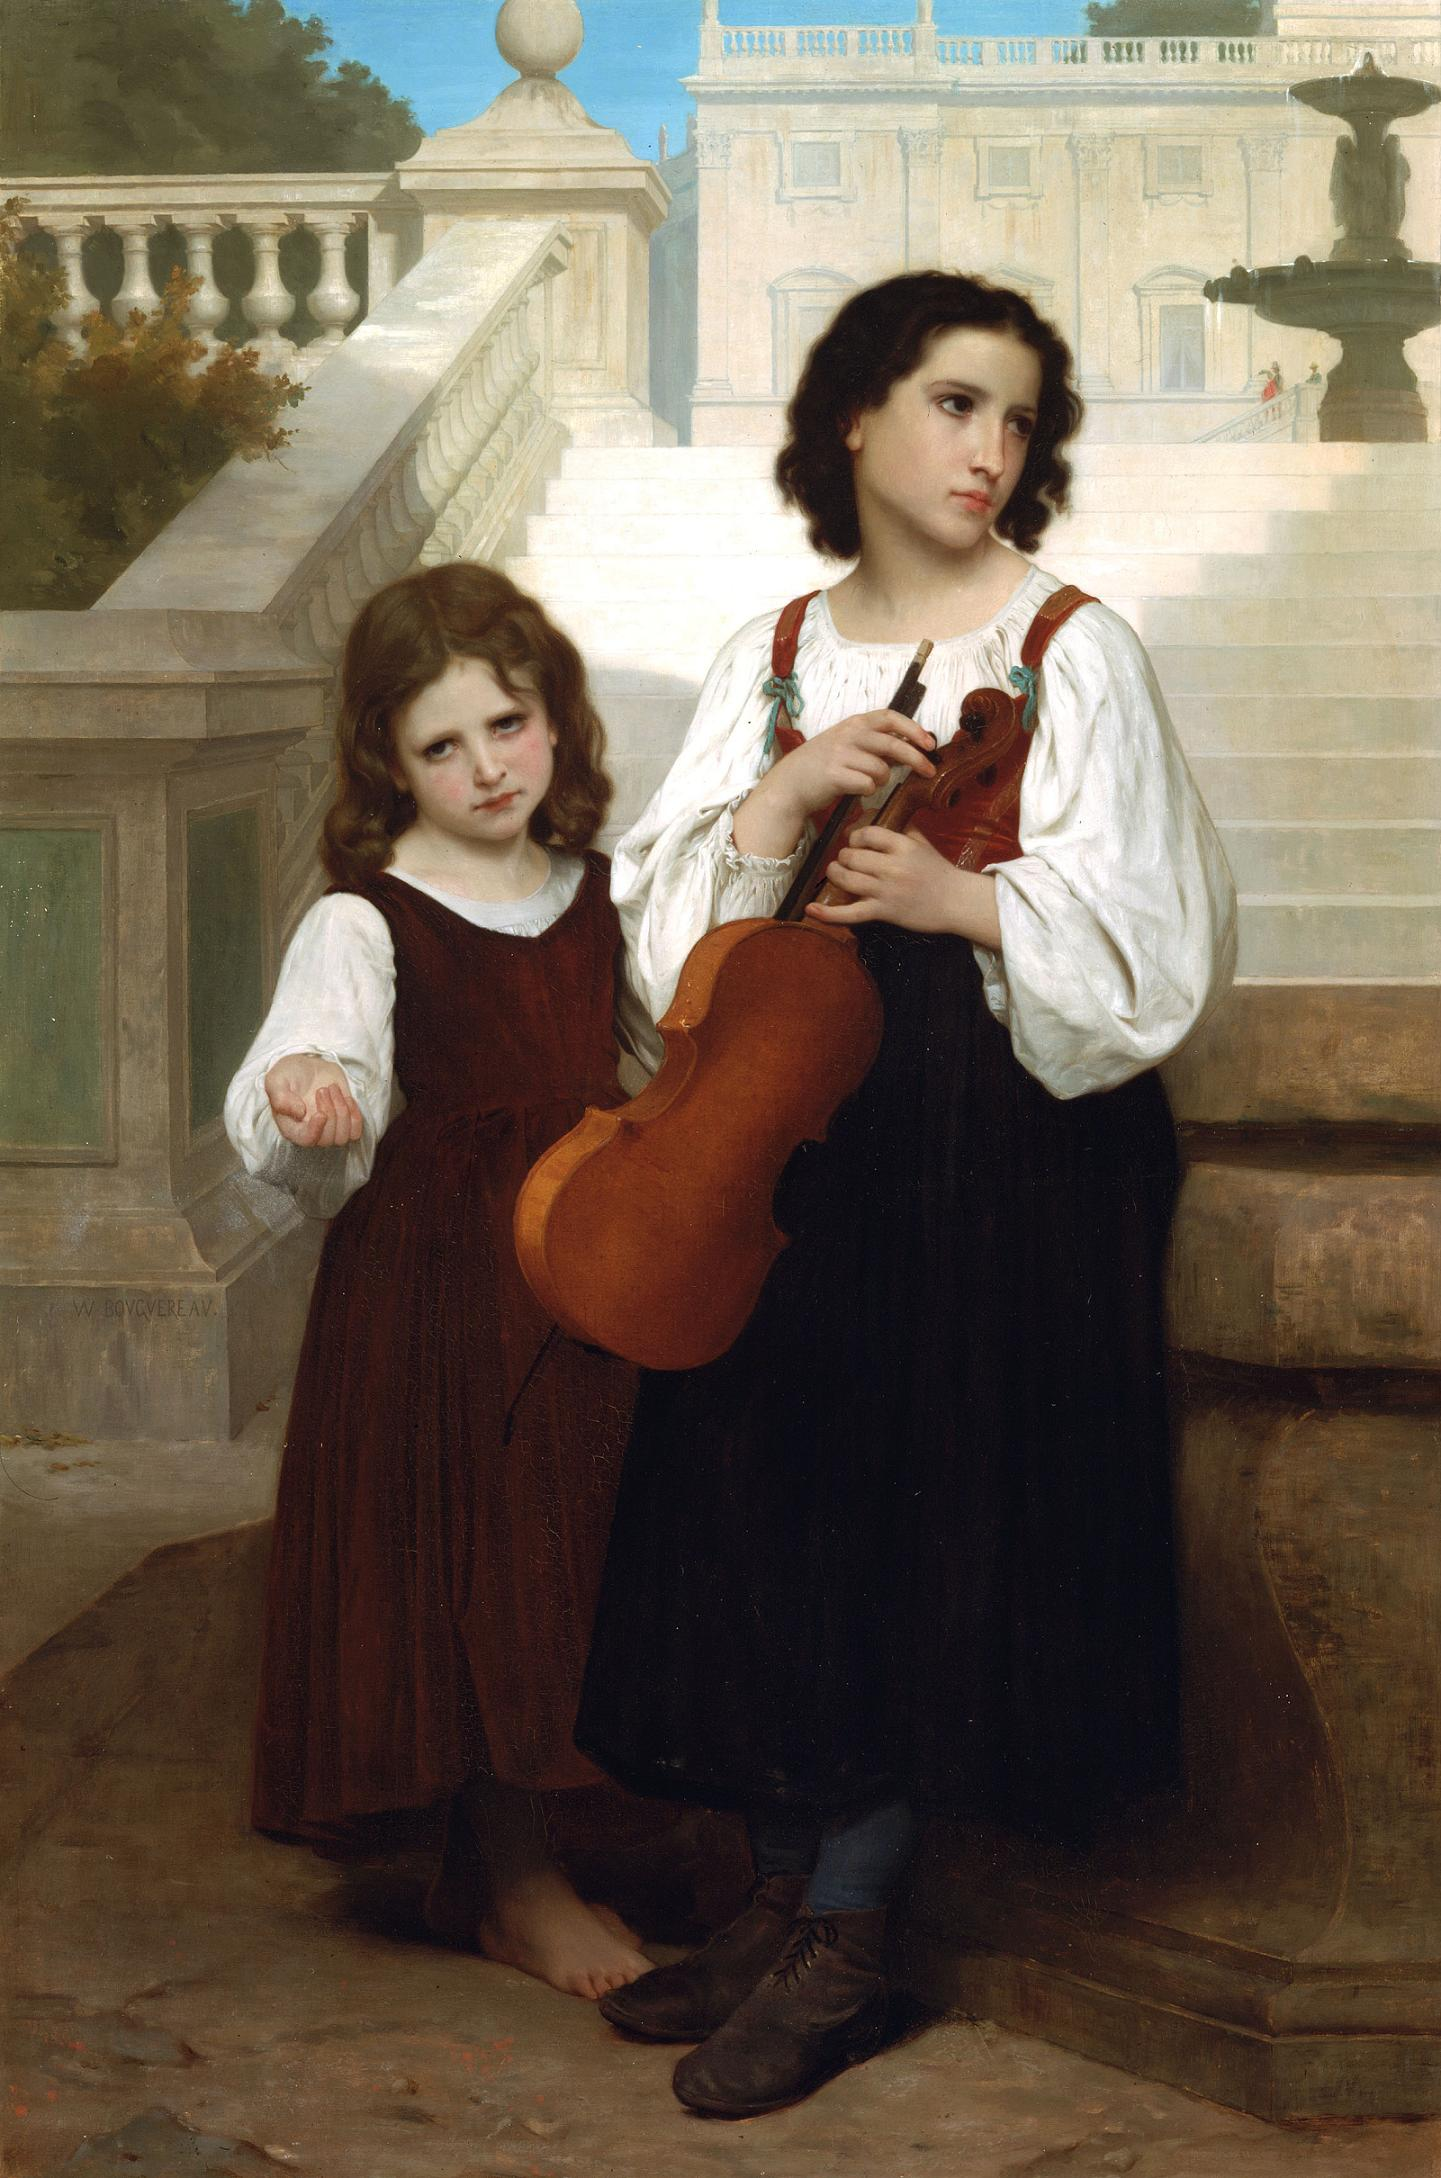 William Bouguereau (1825-1905)  Loin du pays [Far  home]  Oil on canvas, 1867  Private collection